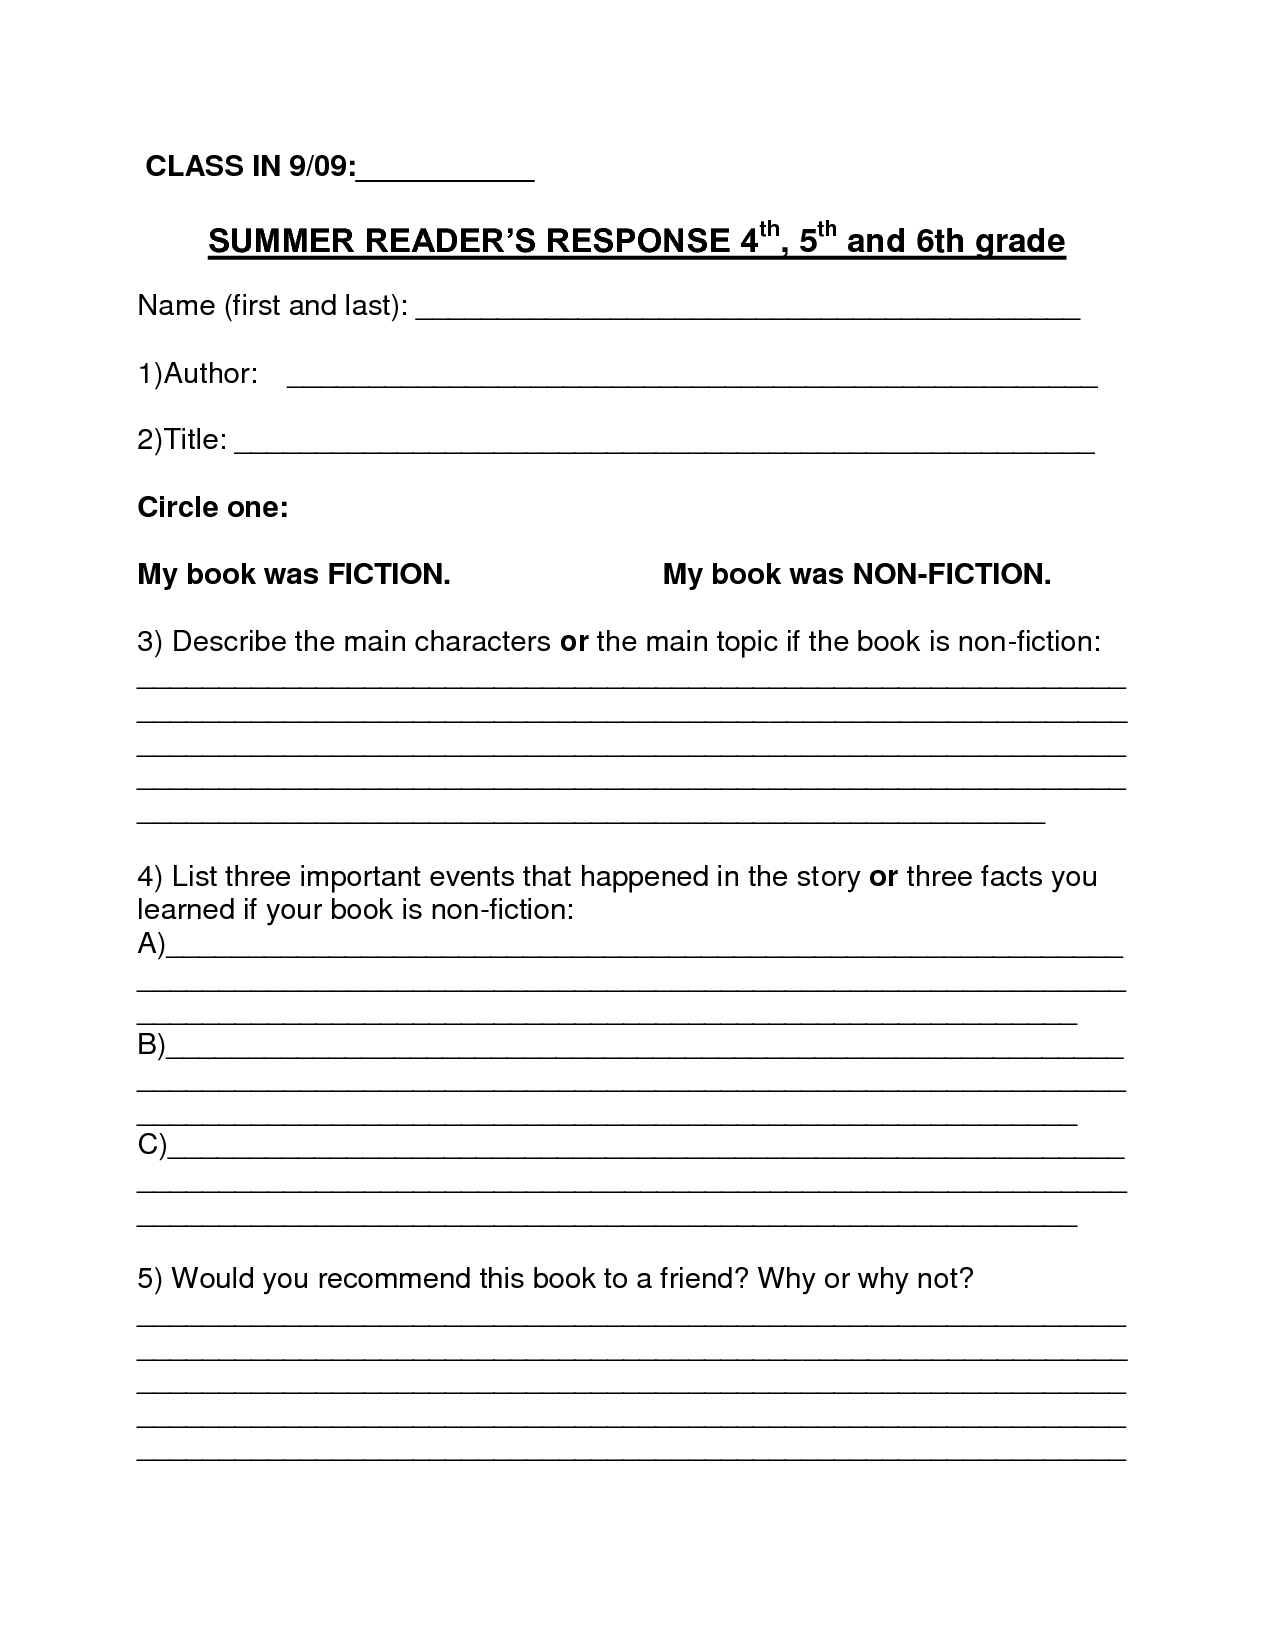 Book Report Template | Summer Book Report 4Th  6Th Grade Pertaining To Book Report Template 4Th Grade